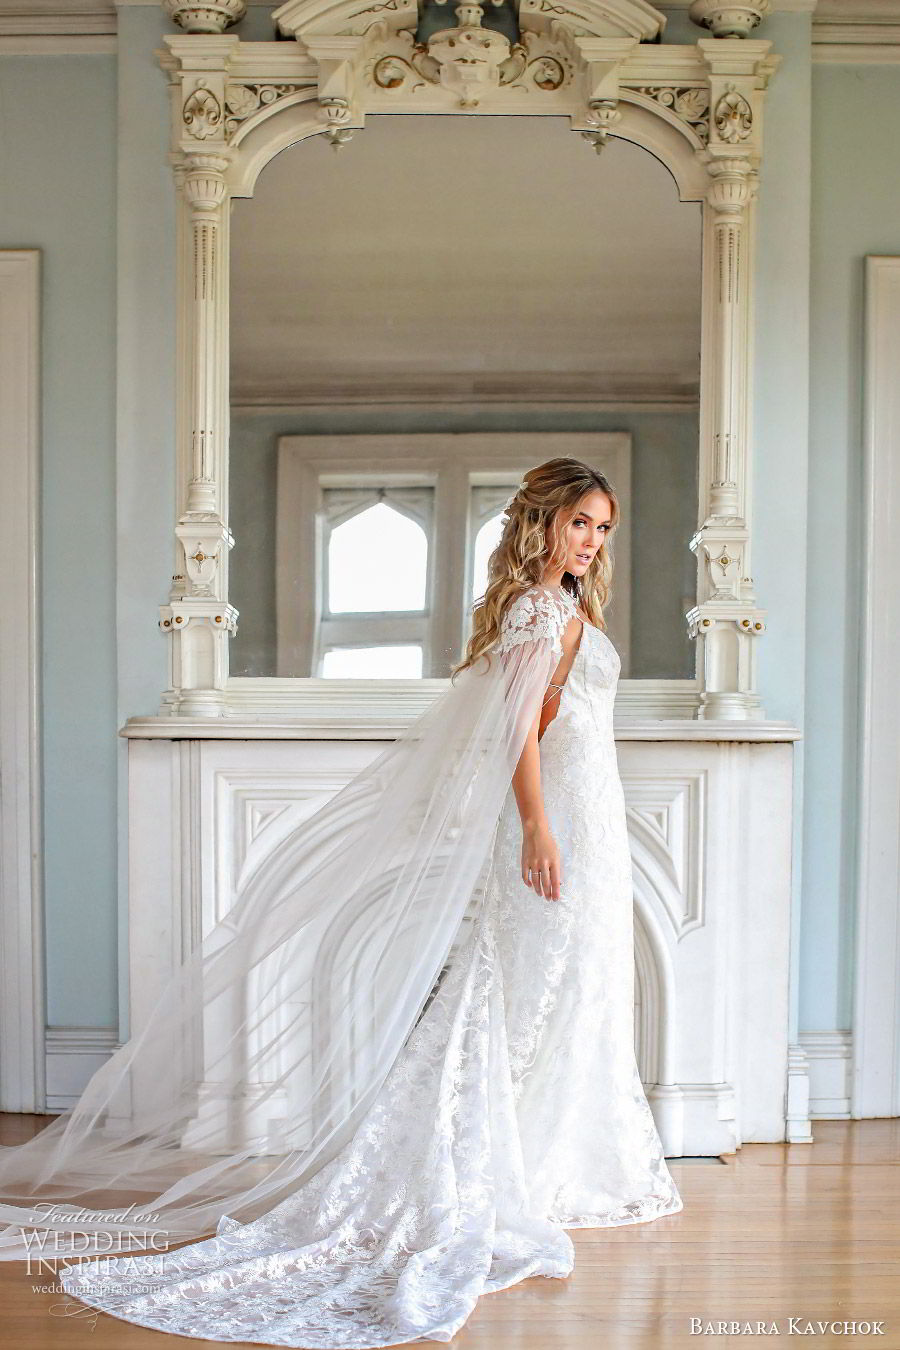 barbara kavchok fall 2019 bridal sleeveless thin straps sweetheart neckline lace sheath wedding dress (9) sv sheer cape low back boho elegant romantic